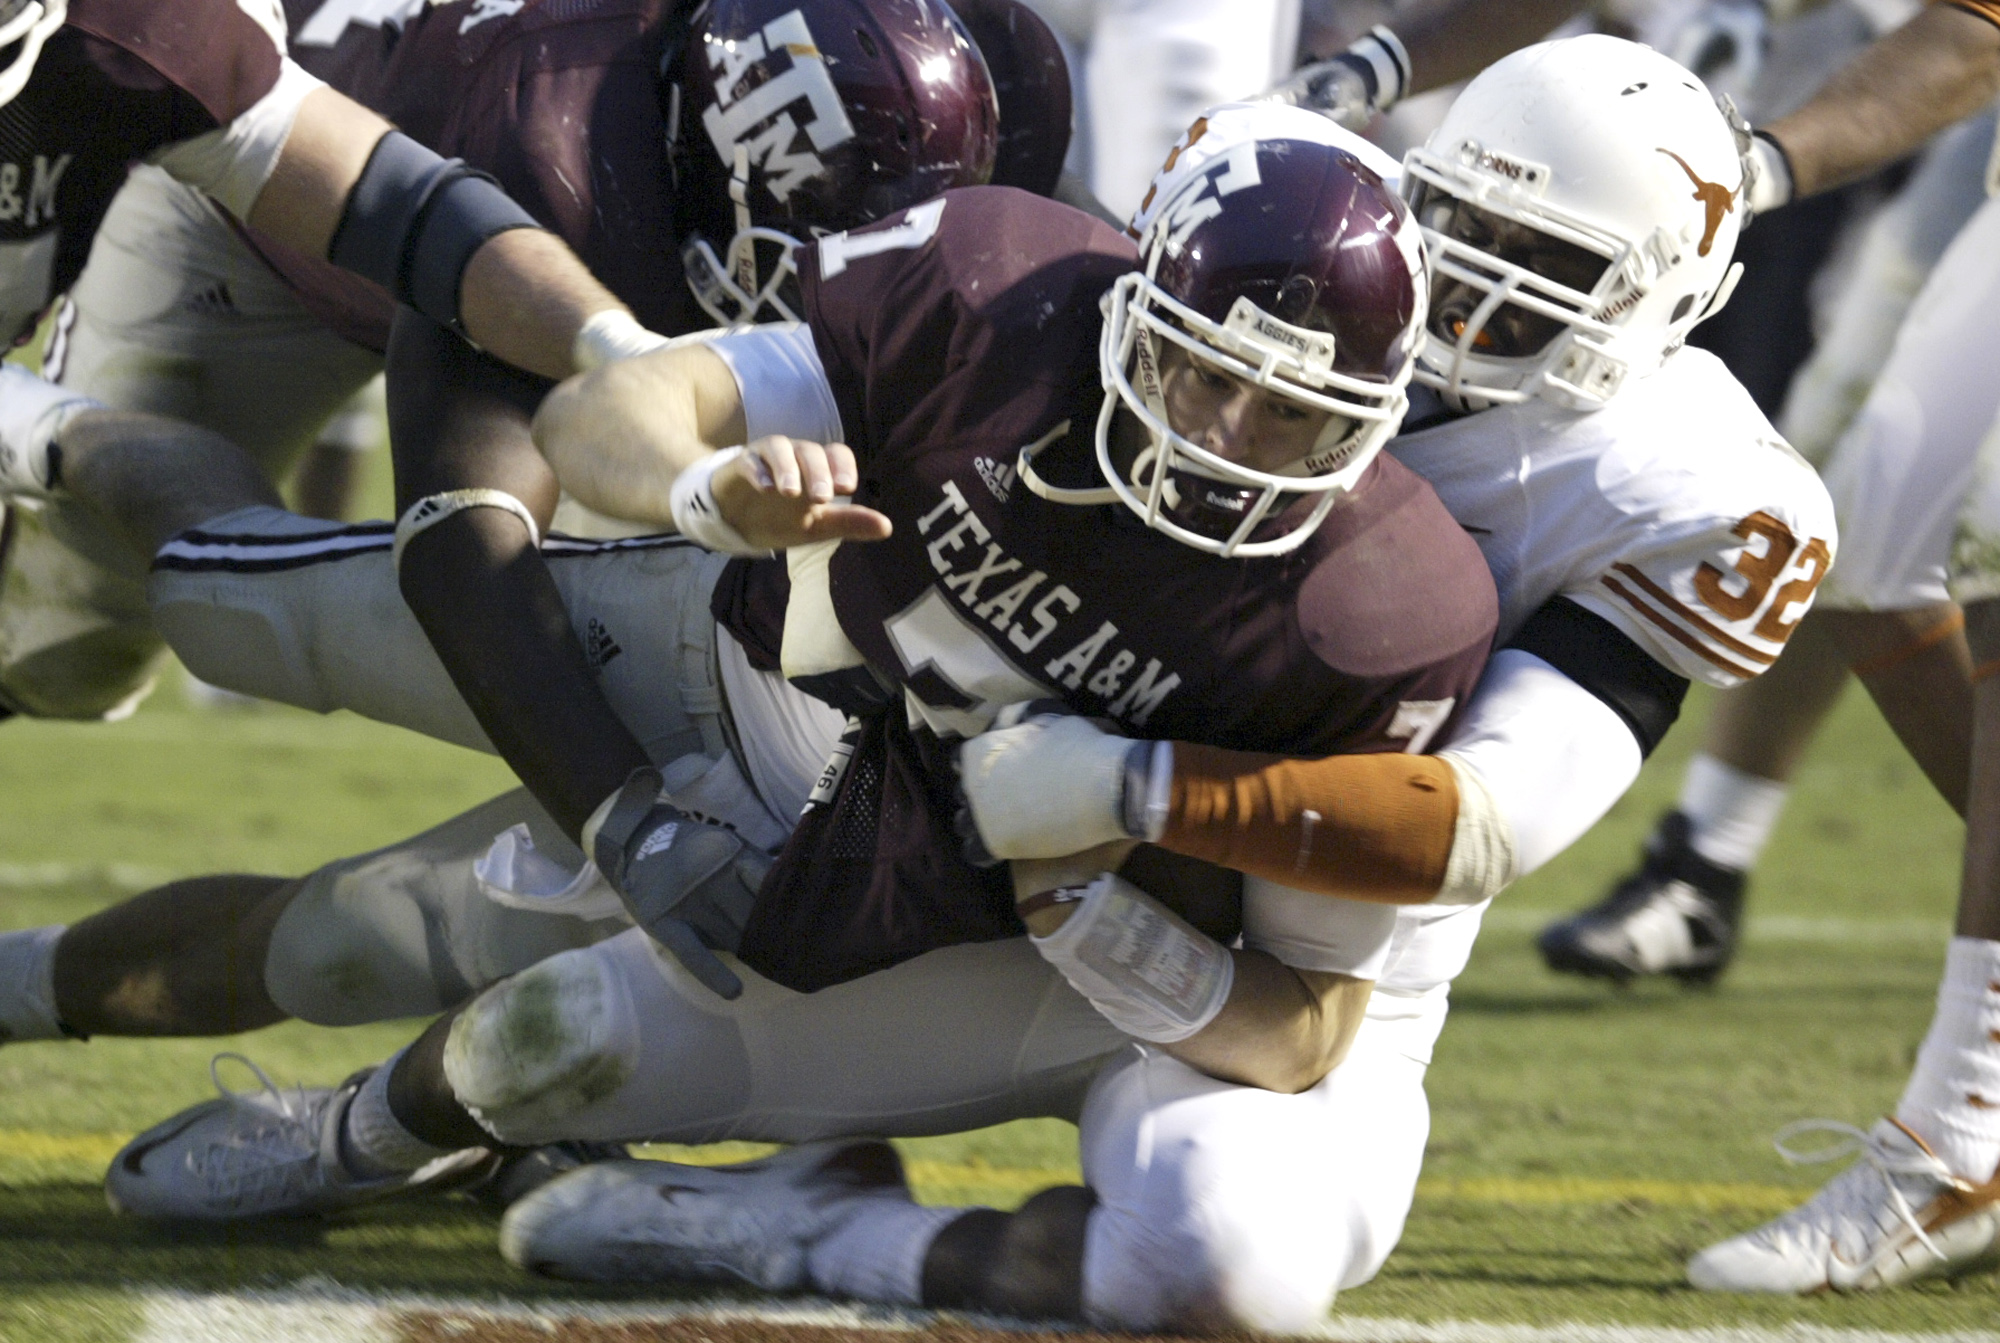 Texas A&M quarterback Stephen McGee (7) dives into the end zone for a touchdown as Texas' Eddie Jones (32) tackles him during the third quarter of a football game Friday, Nov. 23, 2007, in College Station, Texas. Texas A&M beat Texas 38-30. (AP Photo/Paul Zoeller)